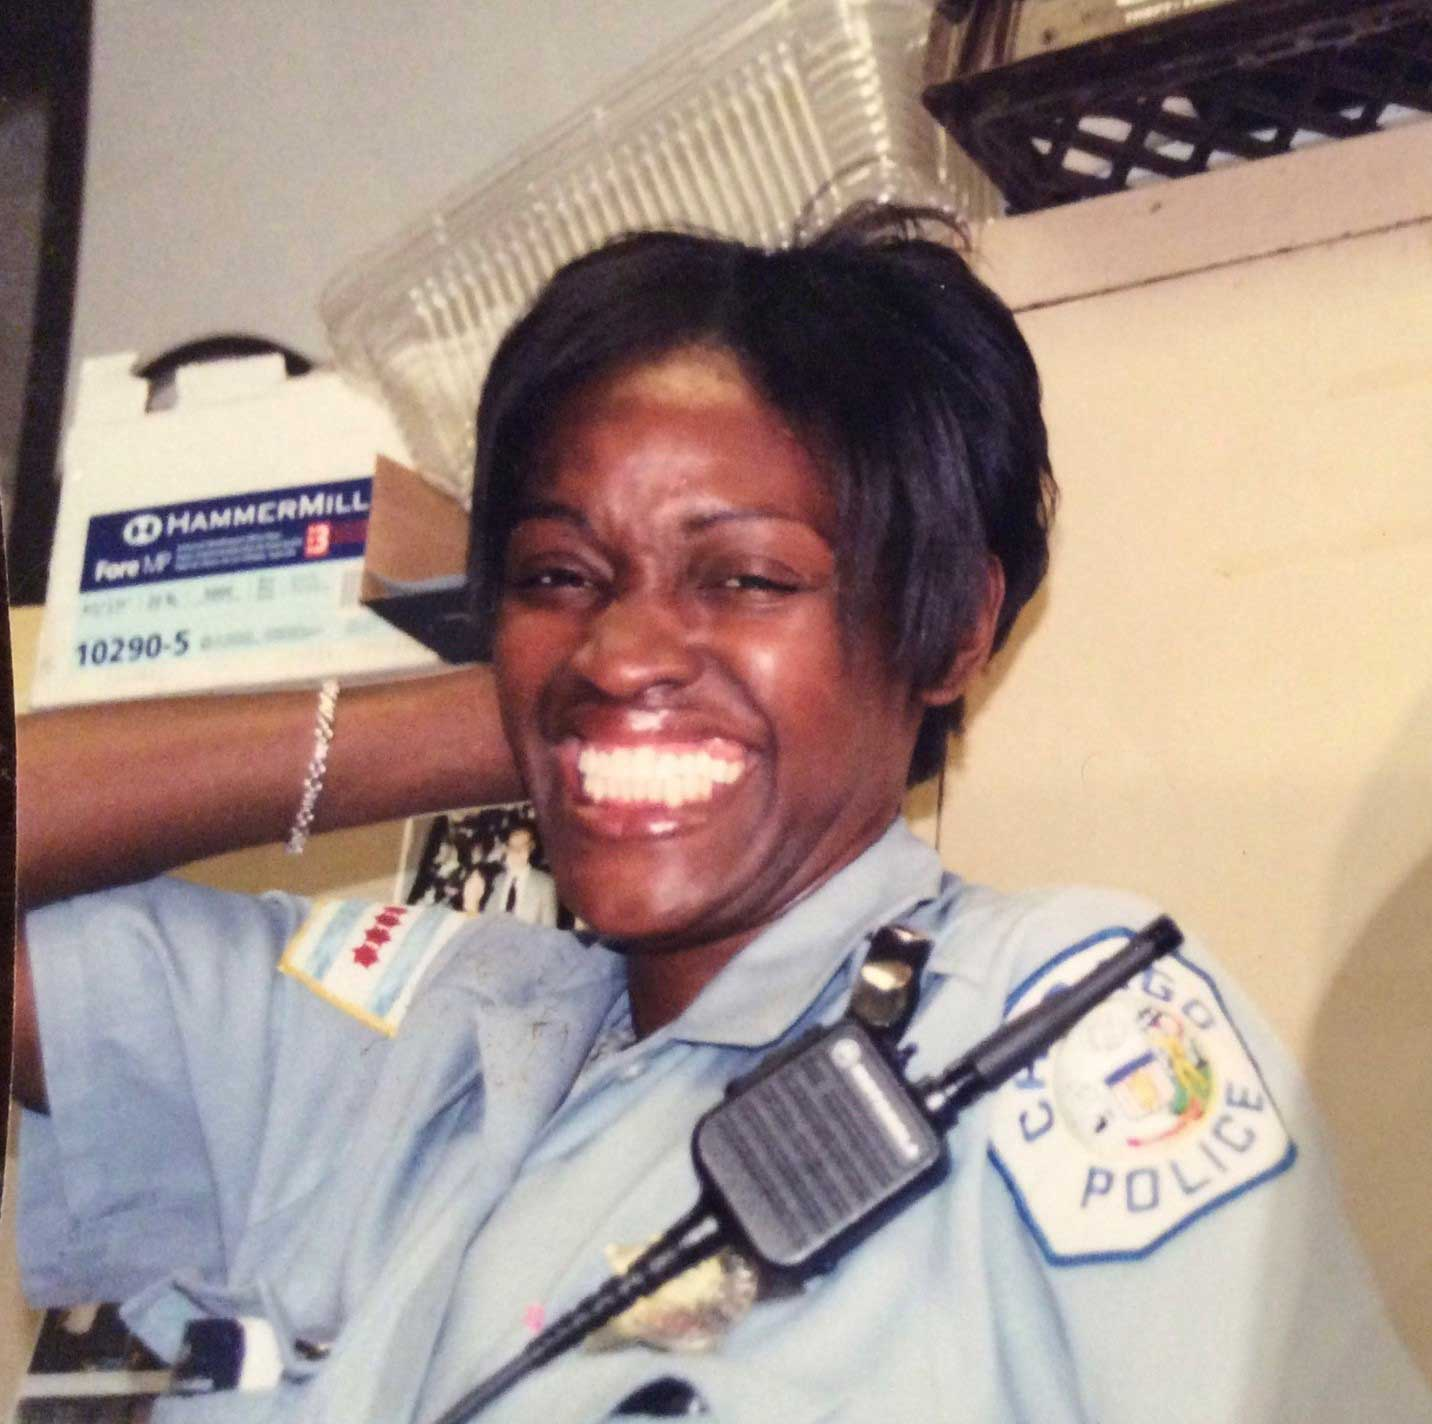 The new Michele Clark weight room is dedicated and named in honor of Carolyn Brown, a Chicago Police officer who served onsite at the school and coached several school teams.